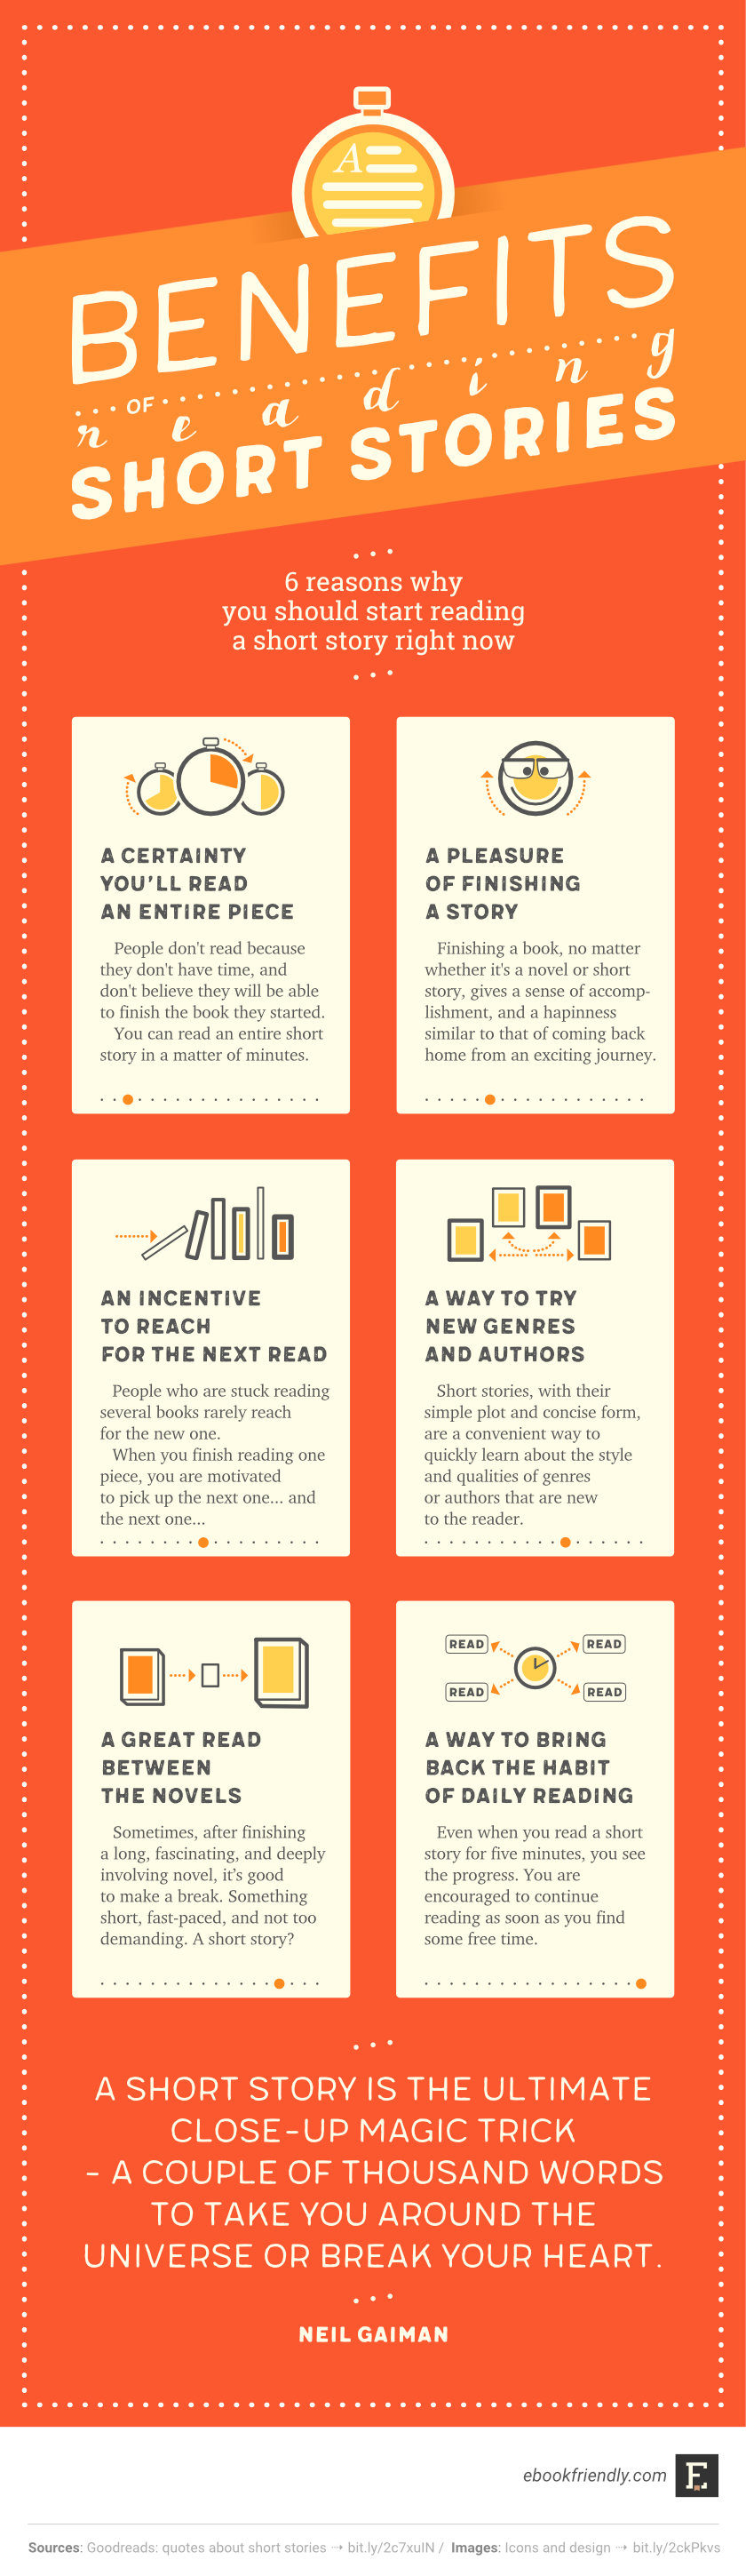 The benefits of reading short stories #infographic